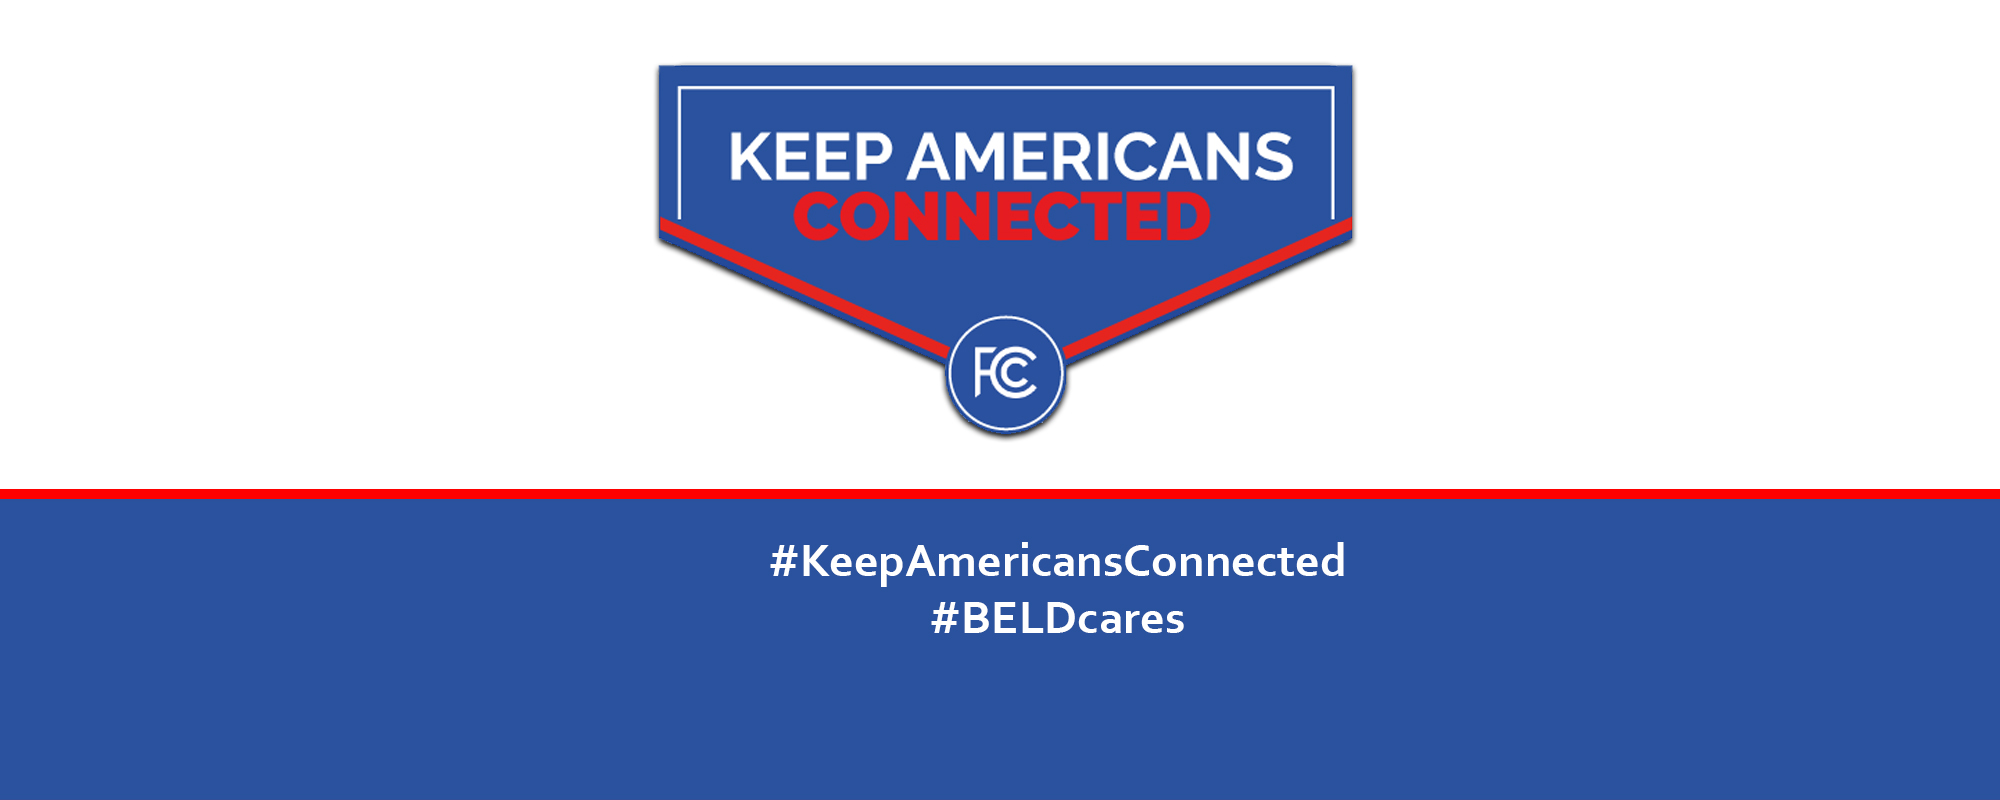 #KeepAmericansConnected